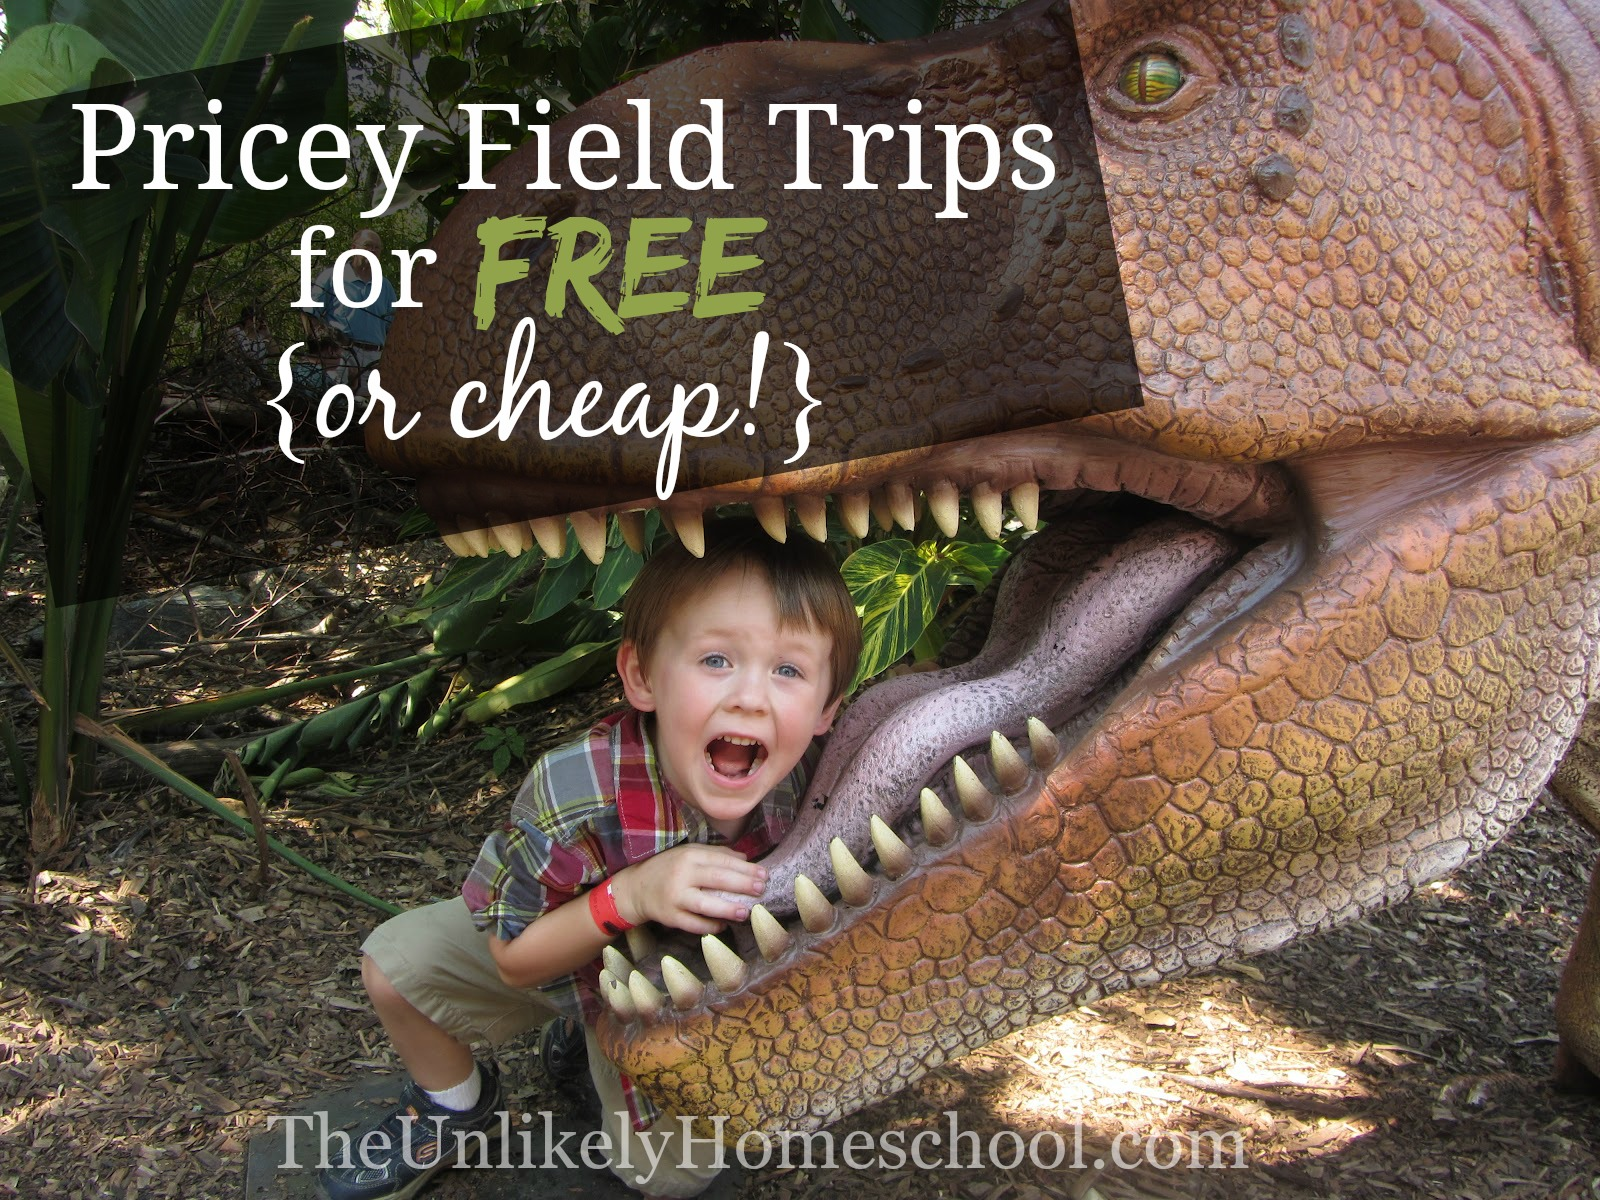 Pricey Field Trips for FREE of Cheap! {The Unlikely Homeschool}